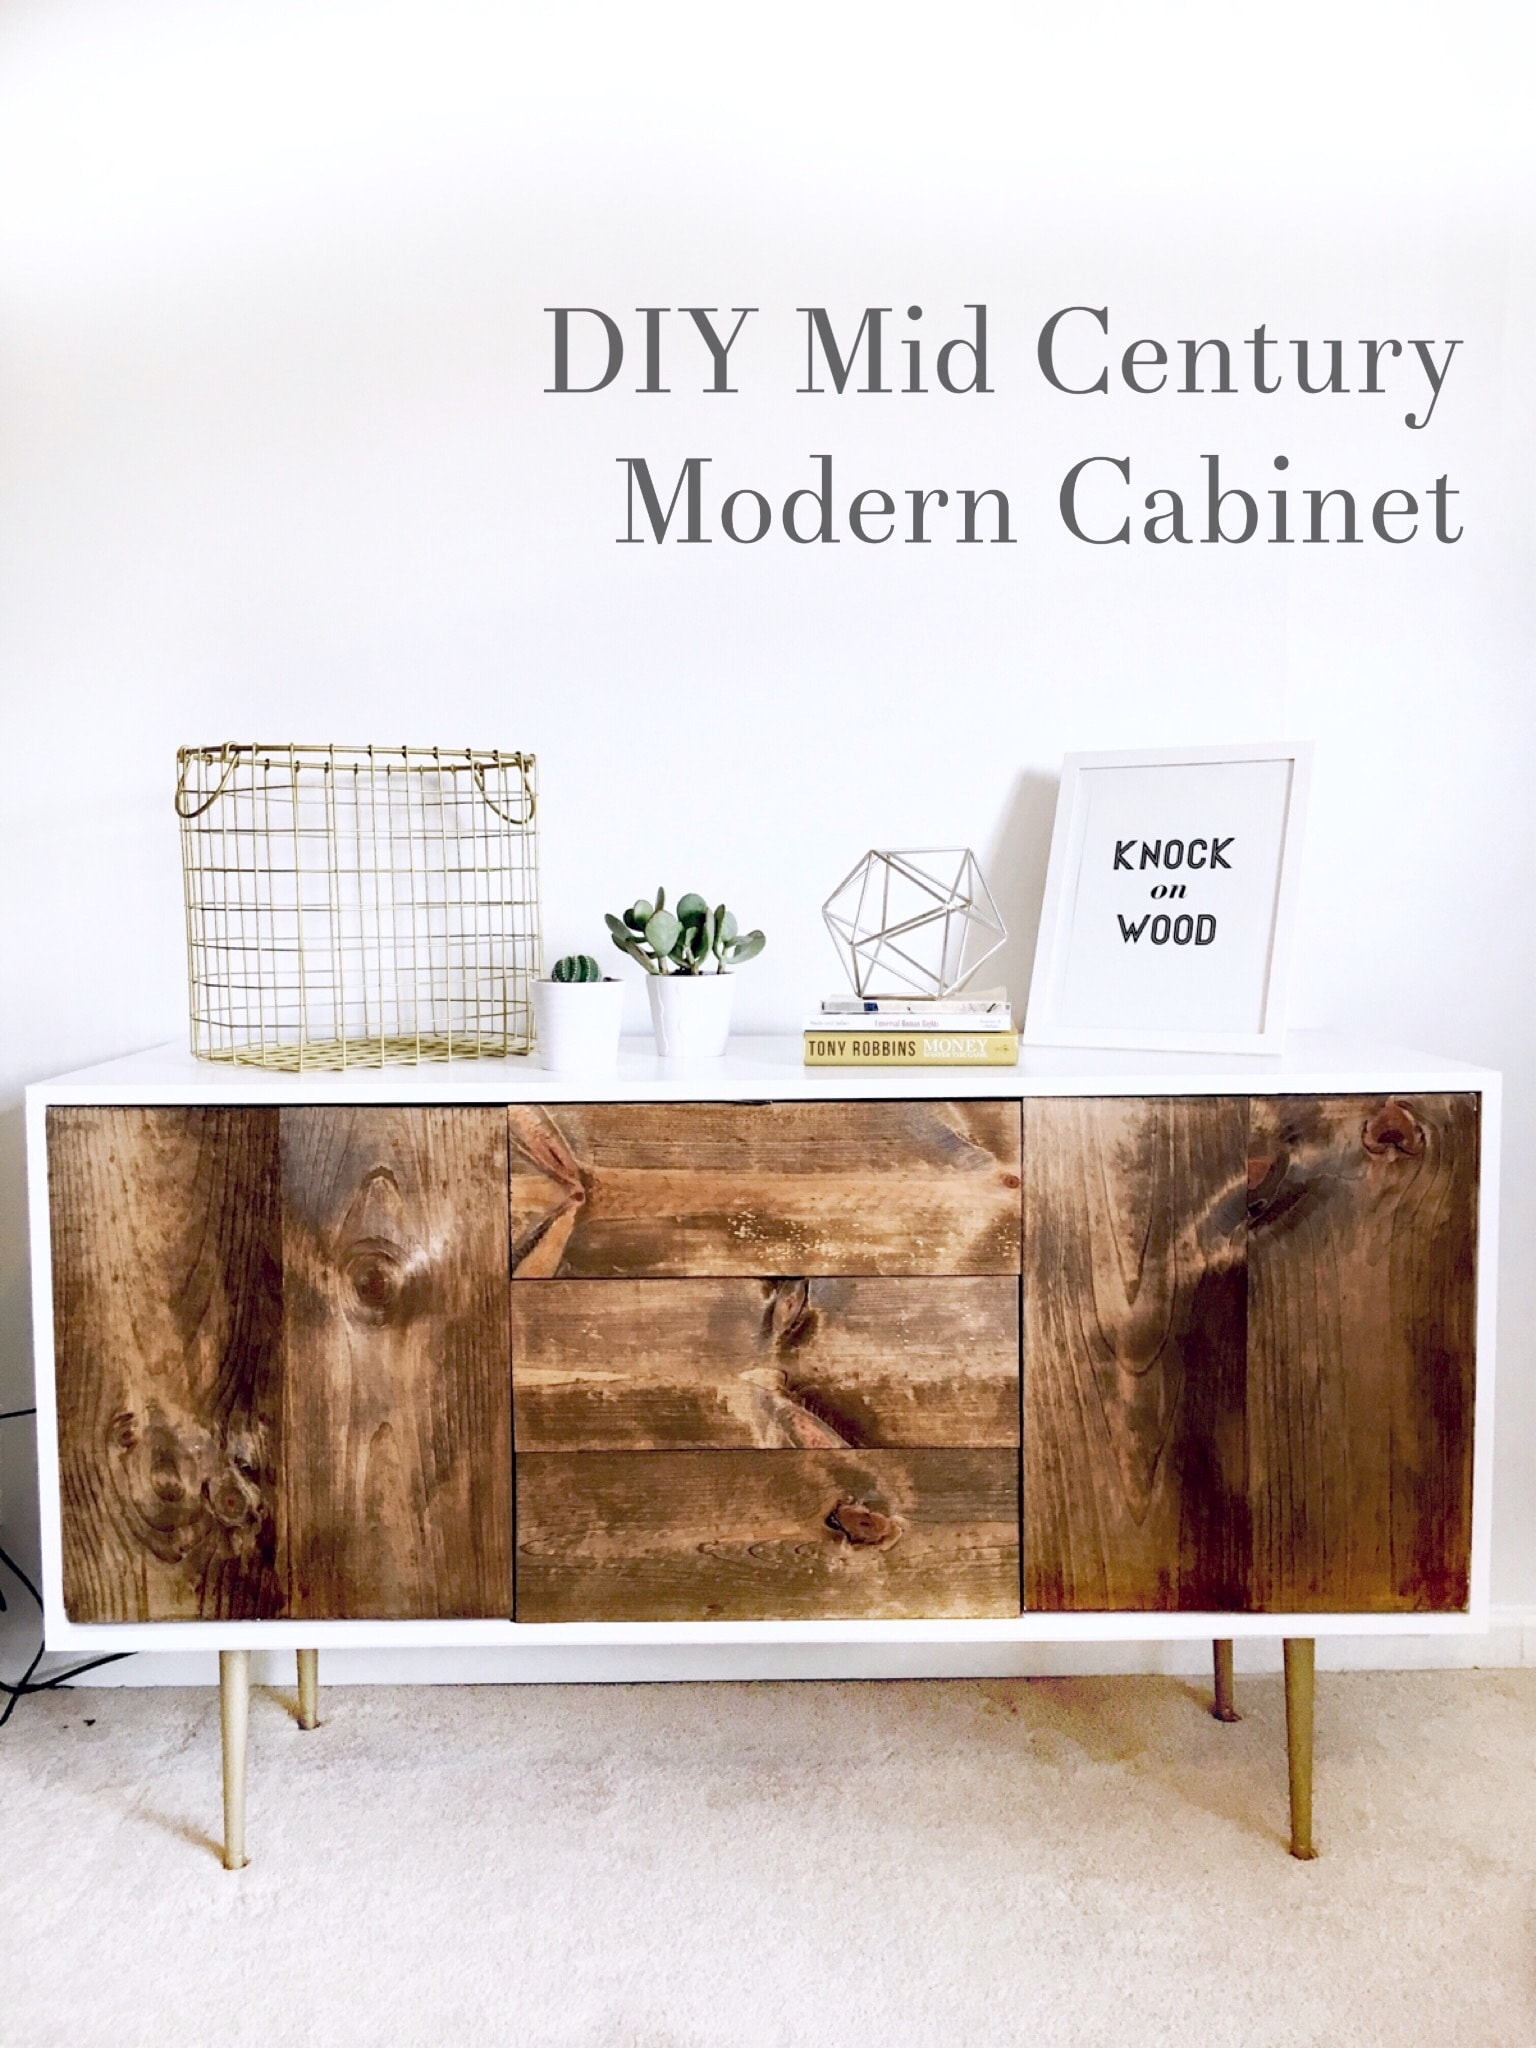 DIY Organic Modernism Inspired Cabinet under $250